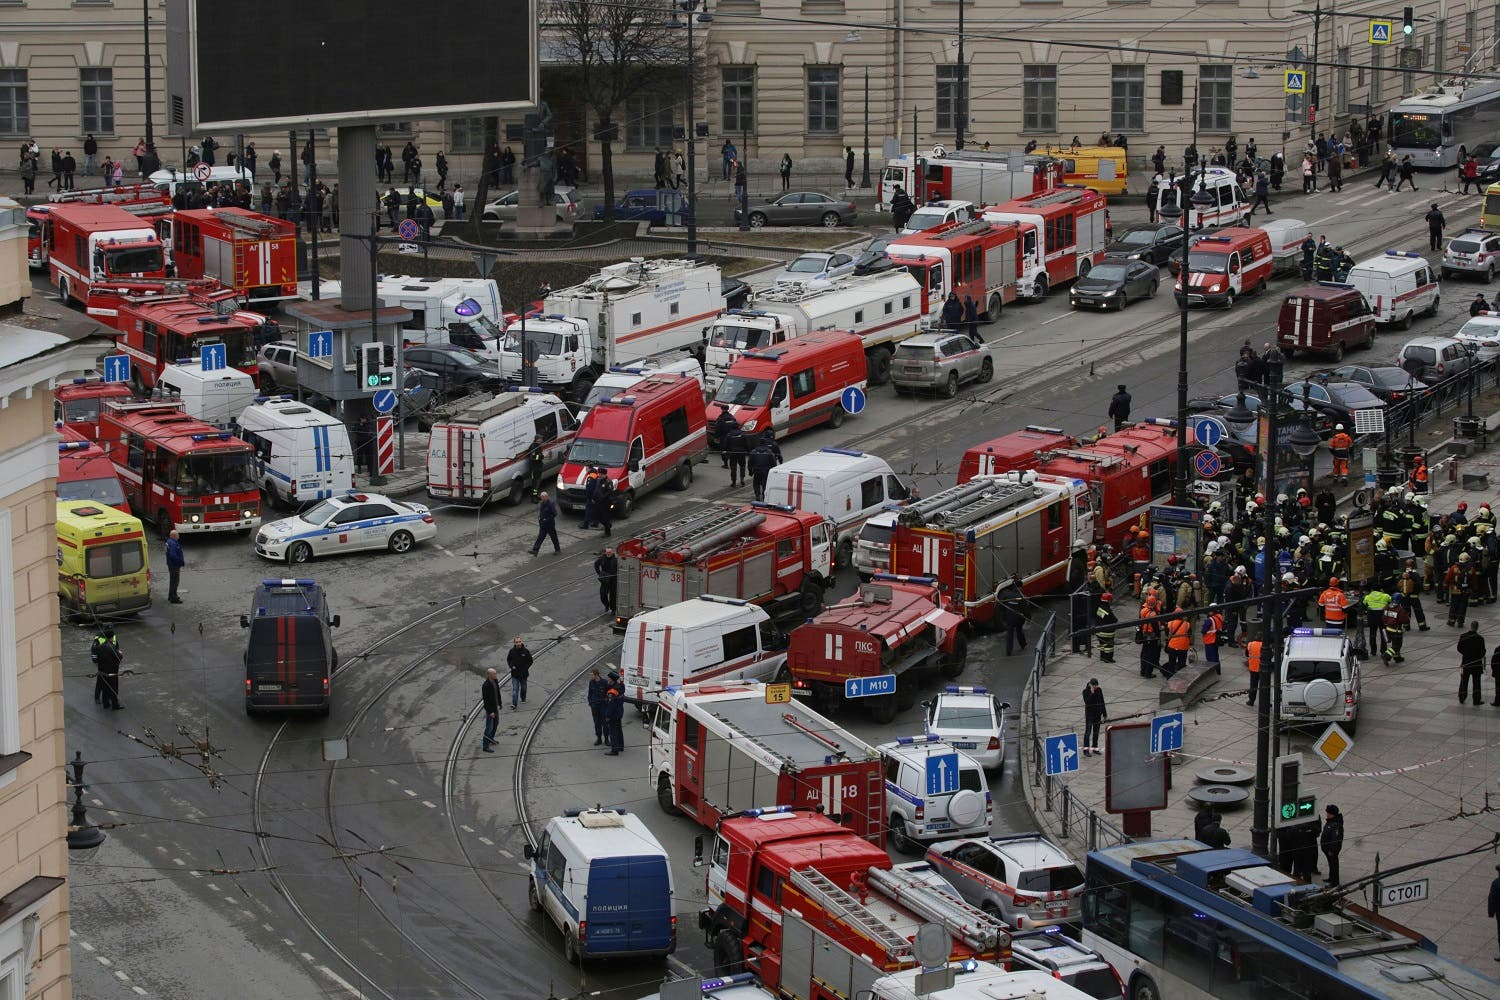 General view of emergency services attending the scene outside Sennaya Ploshchad metro station, following explosions in two train carriages in St. Petersburg, Russia April 3, 2017 (Photo: Reuters/Anton Vaganov)